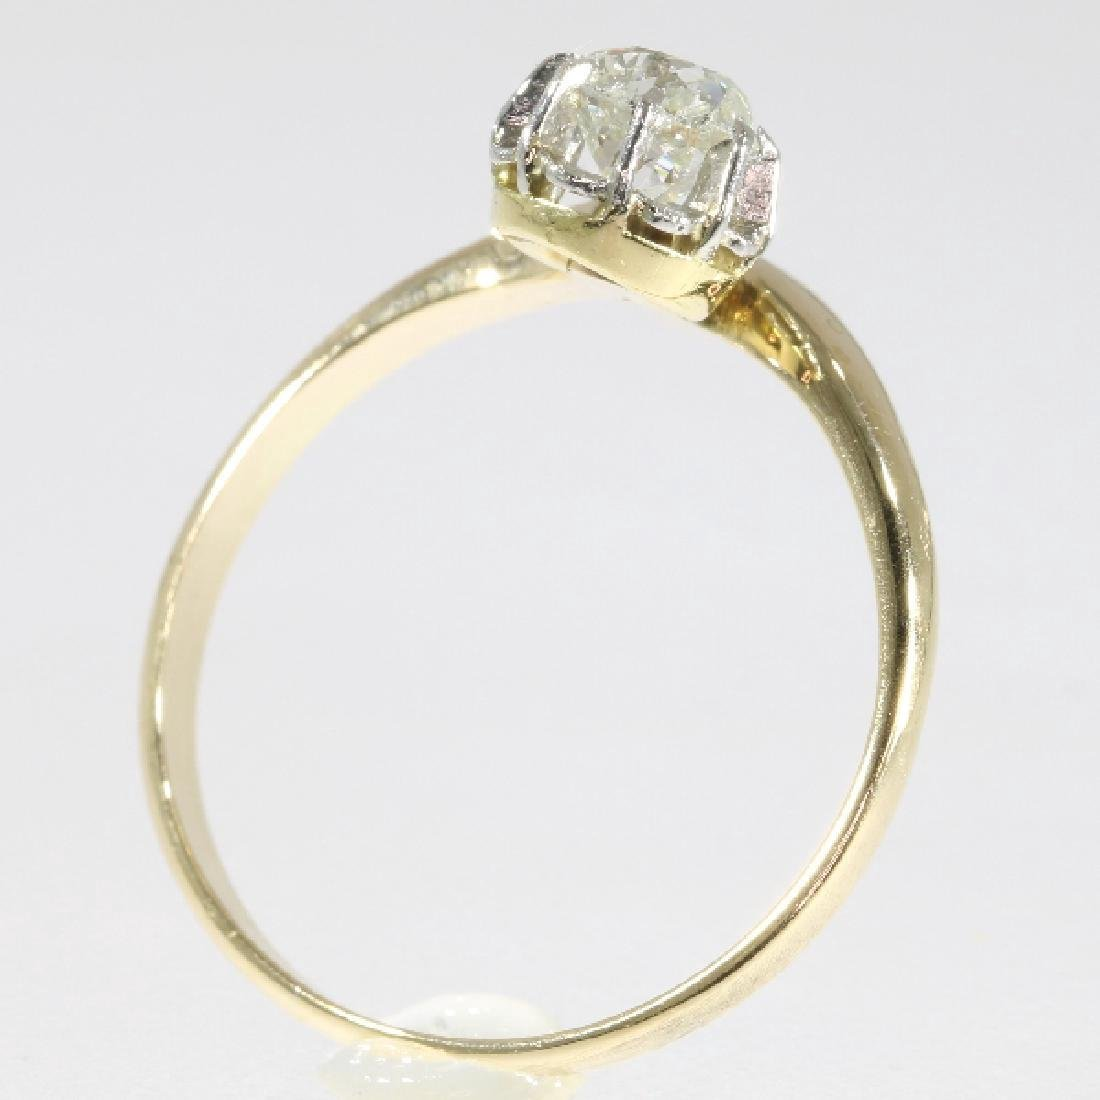 Antique Belle Epoque 14K Gold Diamond Ring, .4ct - 3